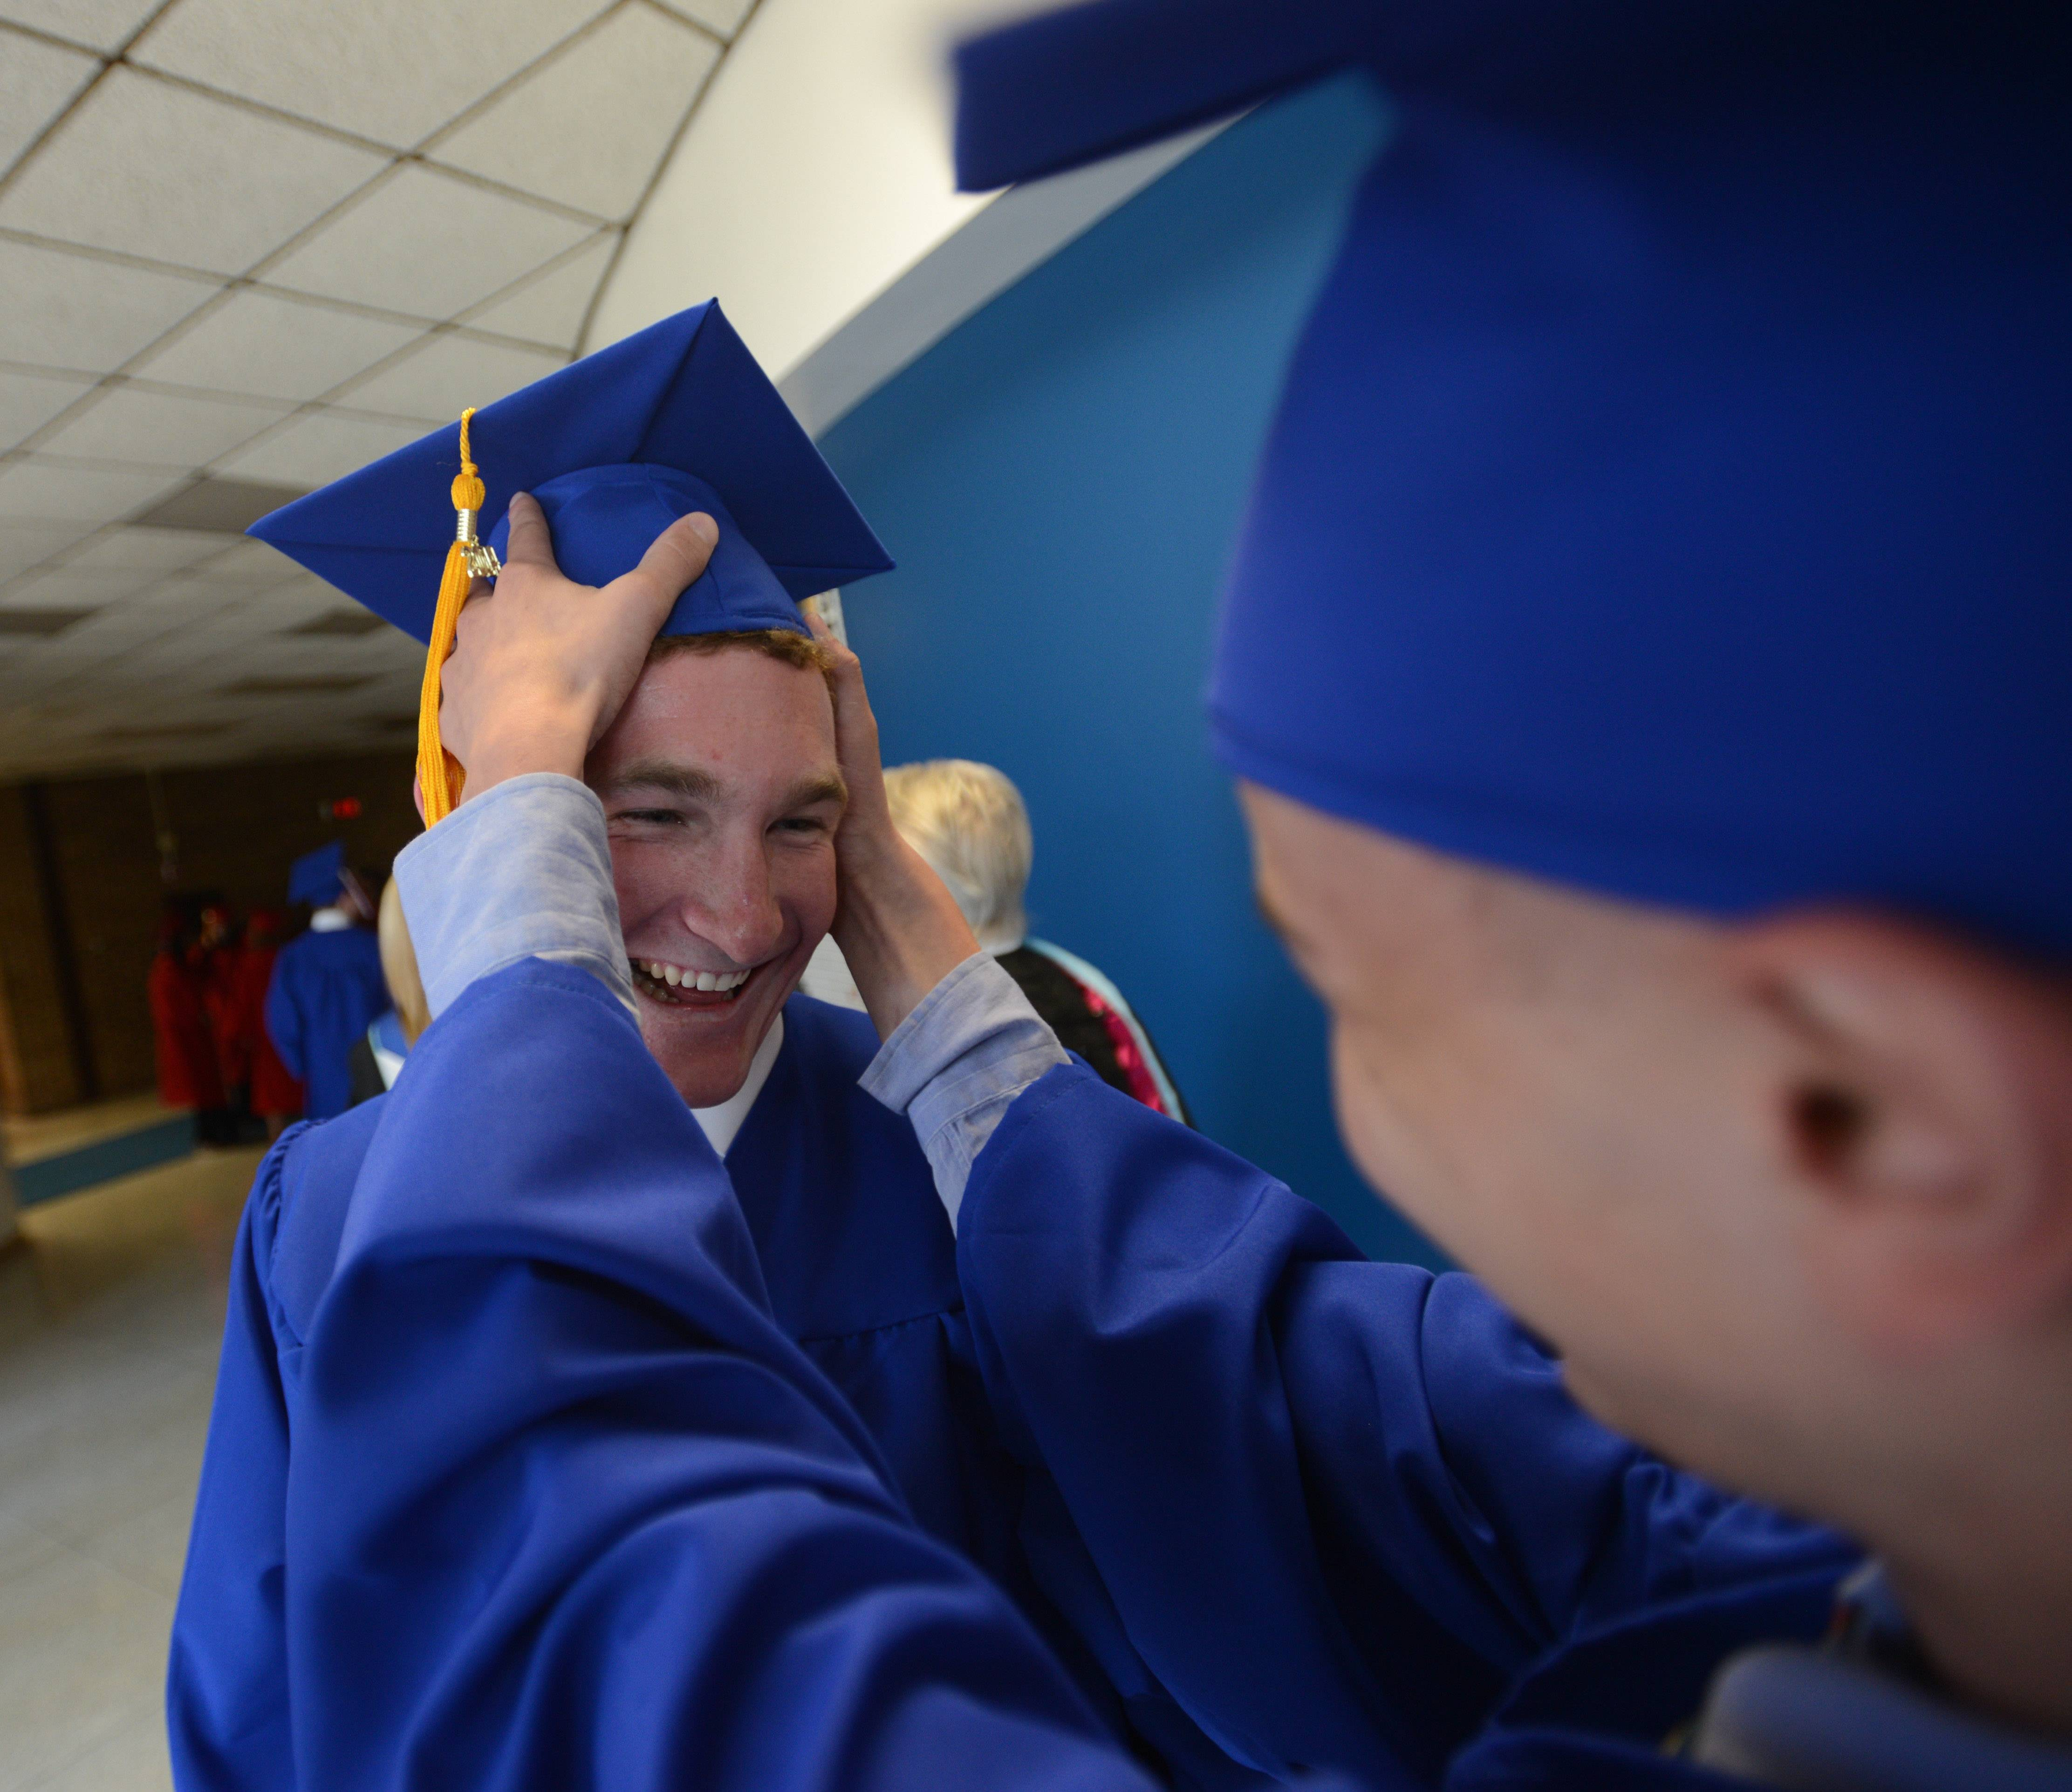 Glenbard South High School held its graduation Friday, June 6 in the school's gym.